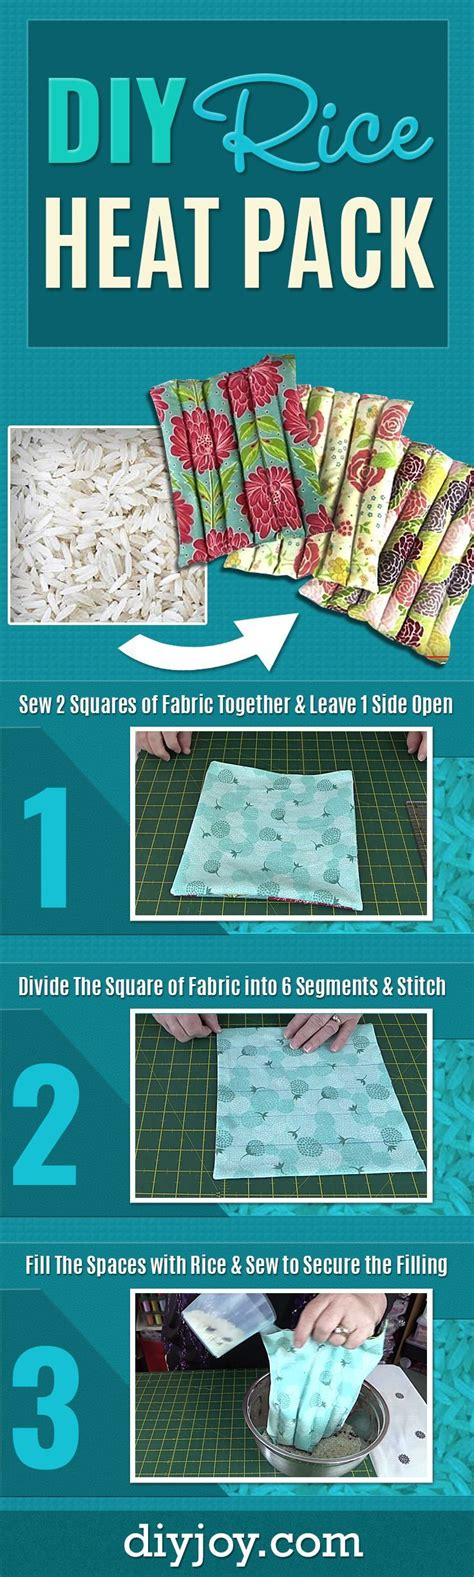 gift diy projects 25 best sewing ideas on sowing crafts sewing projects for beginners and sow clothes